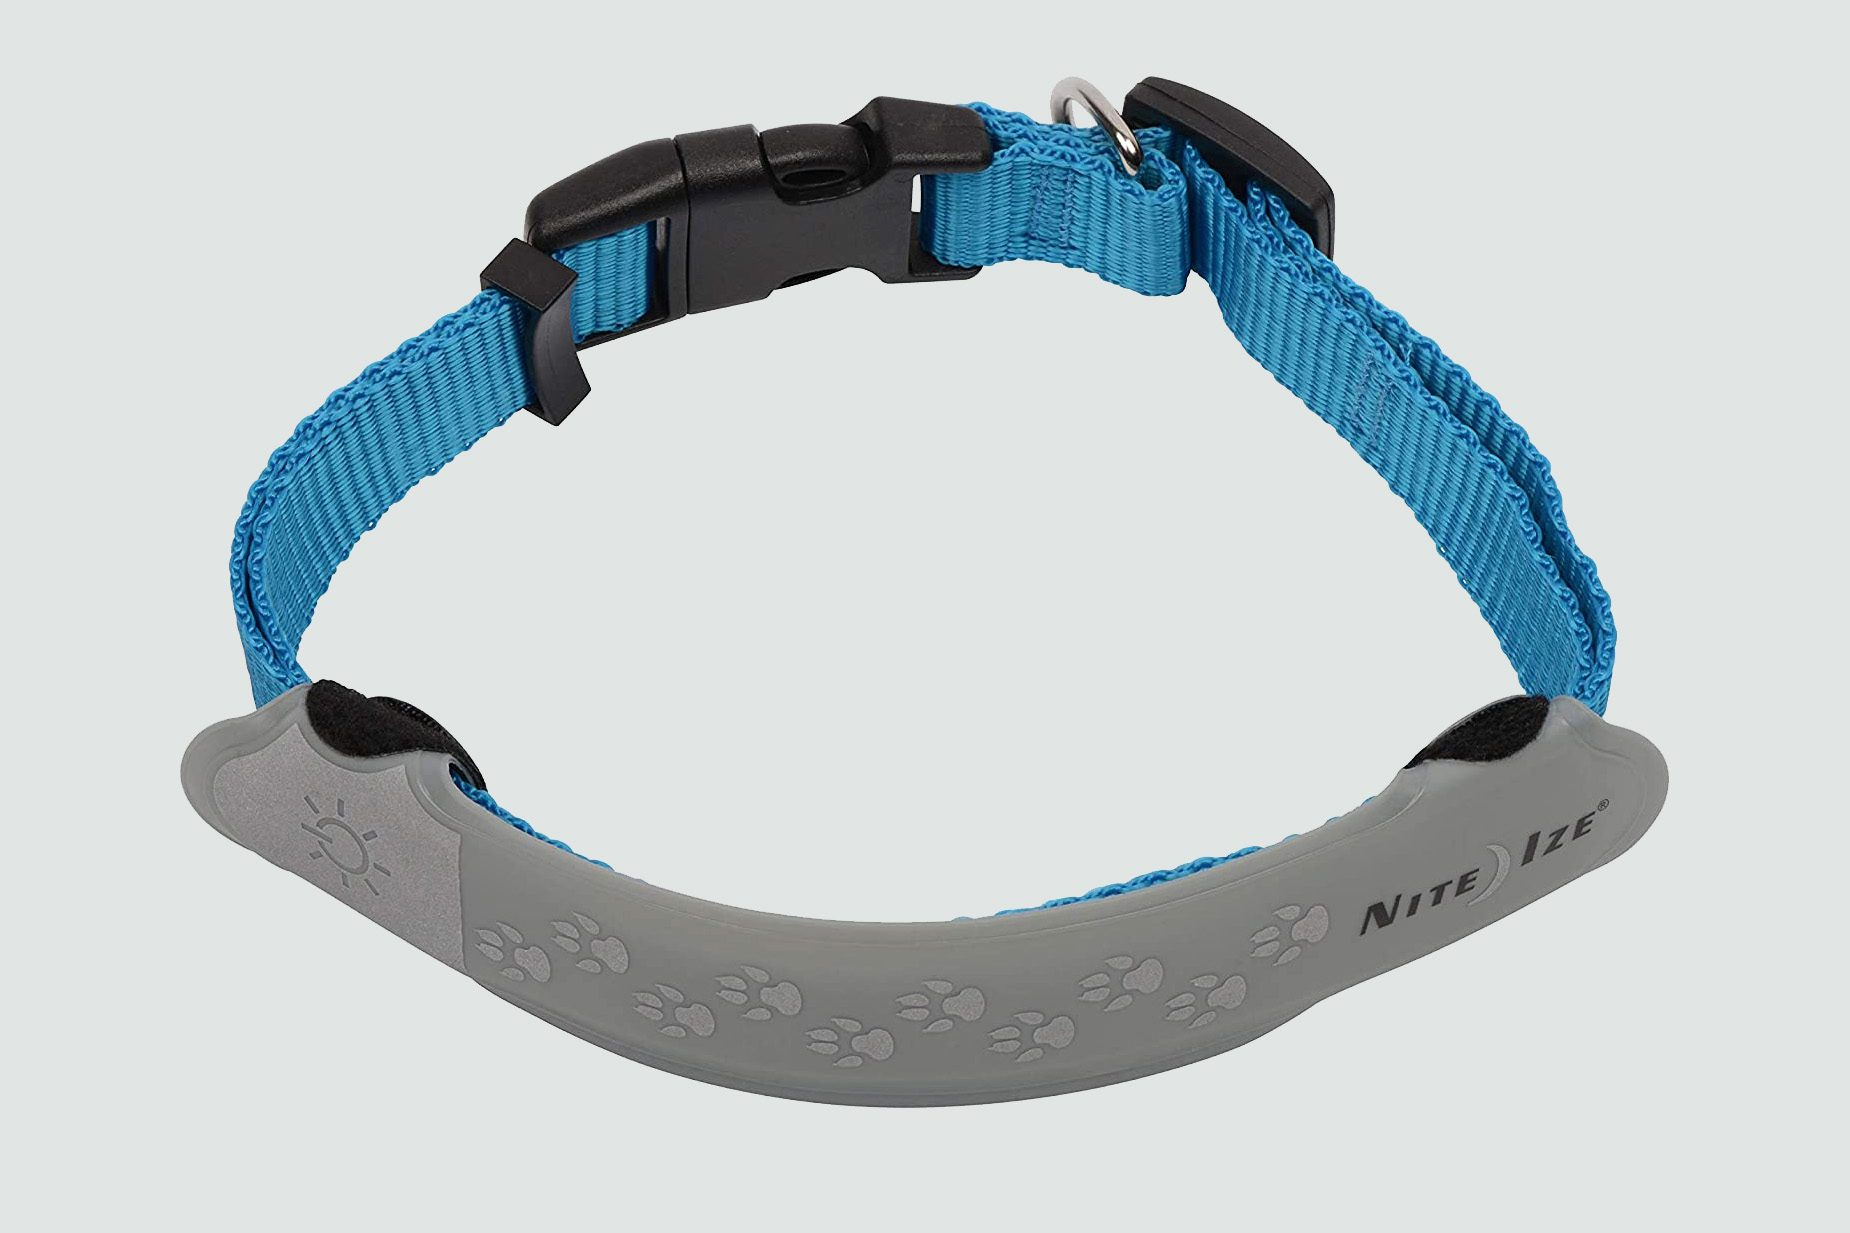 Glow-in-the-dark or reflective collars